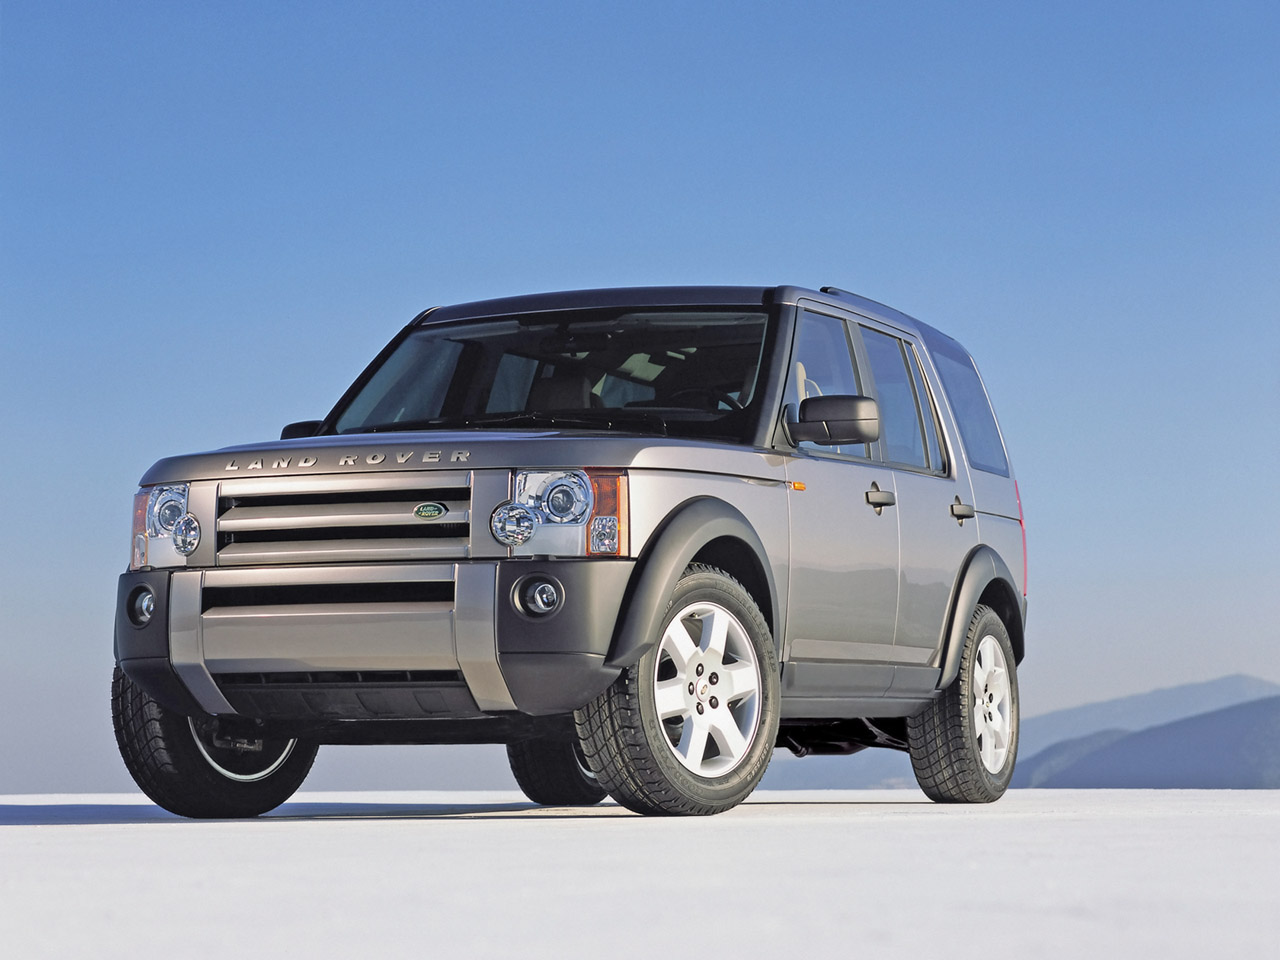 Land Rover Discovery 2012 Cars Wallpaper Gallery And Reviews